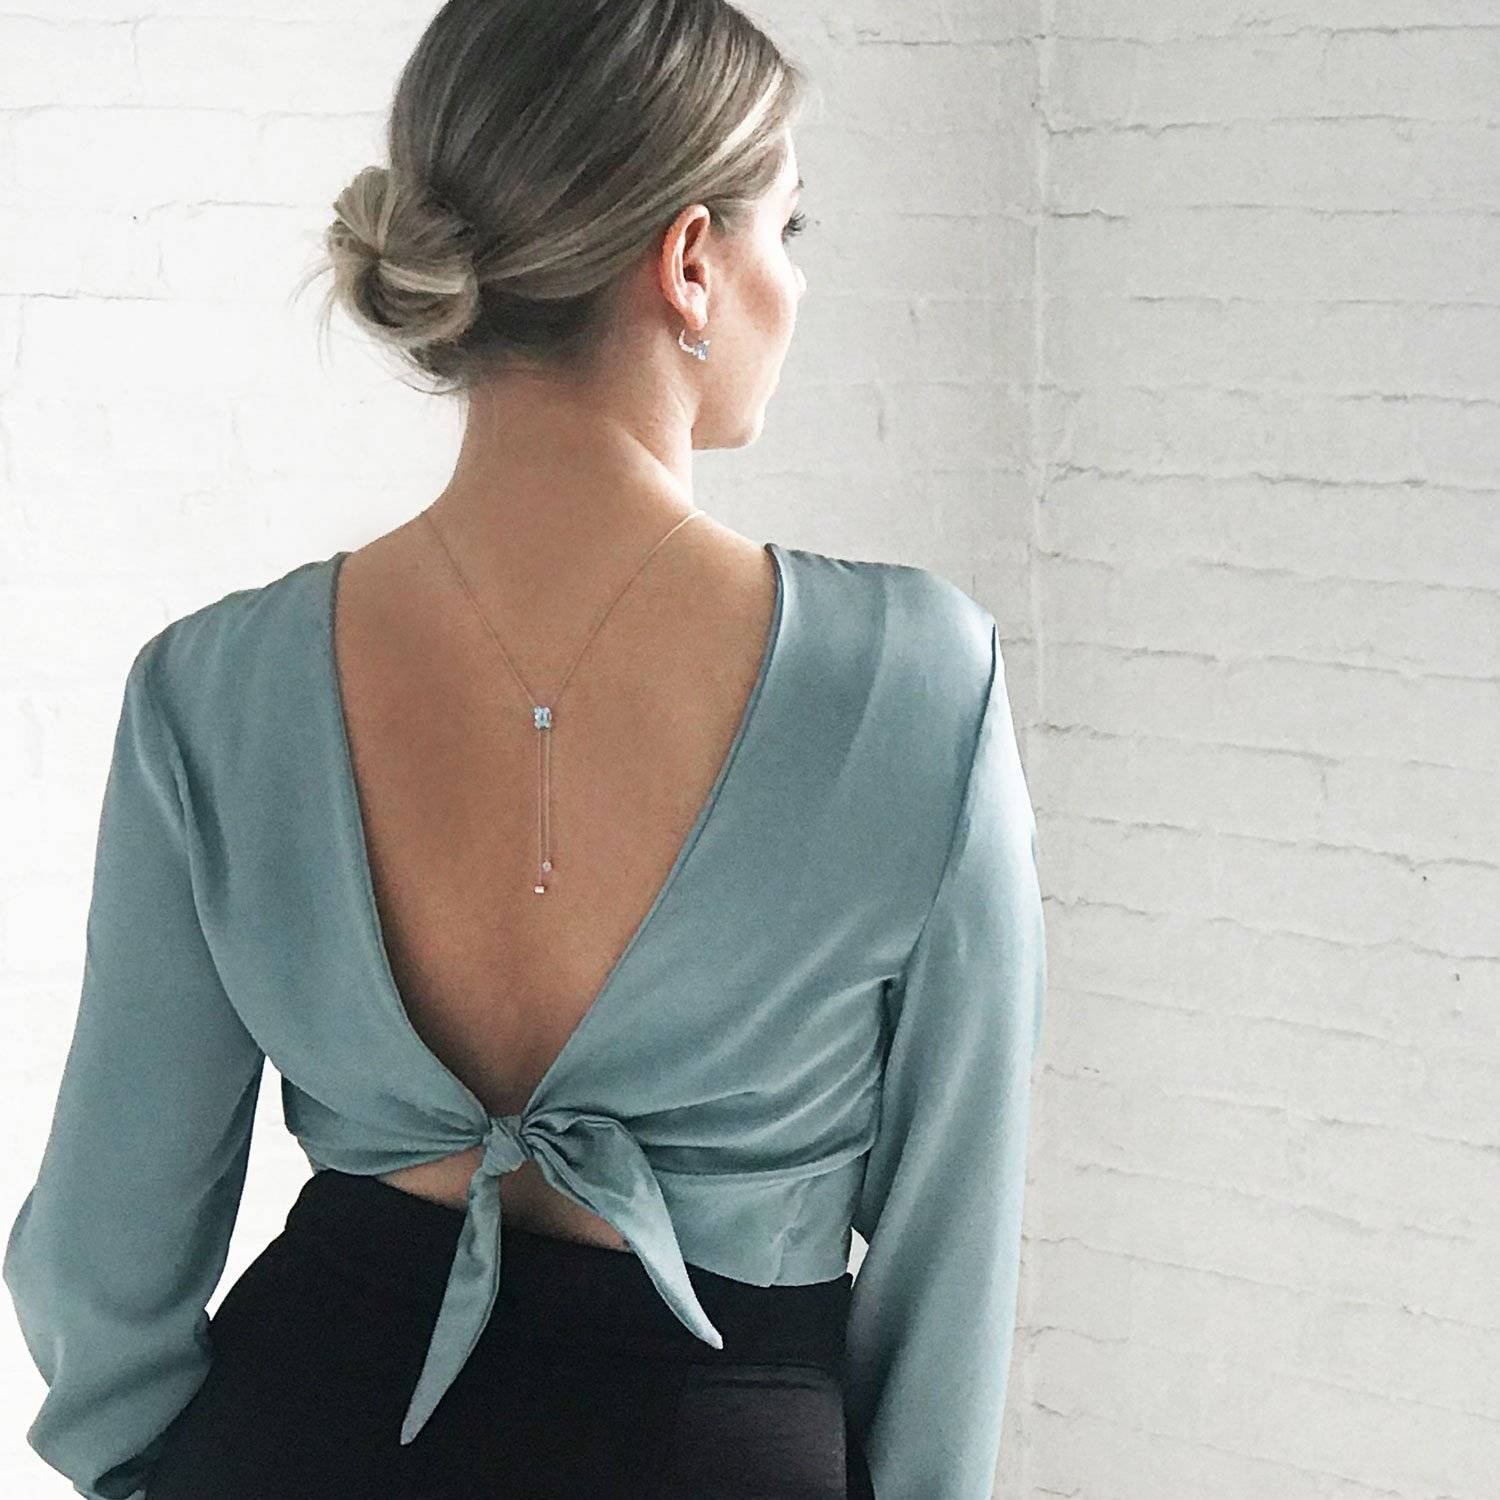 A beautiful woman staring out a window wearing a K8 Jewelry lariat necklace as a back lace. The blouse with V back is the same color as the large aquamarine in the necklace.  Edit alt text